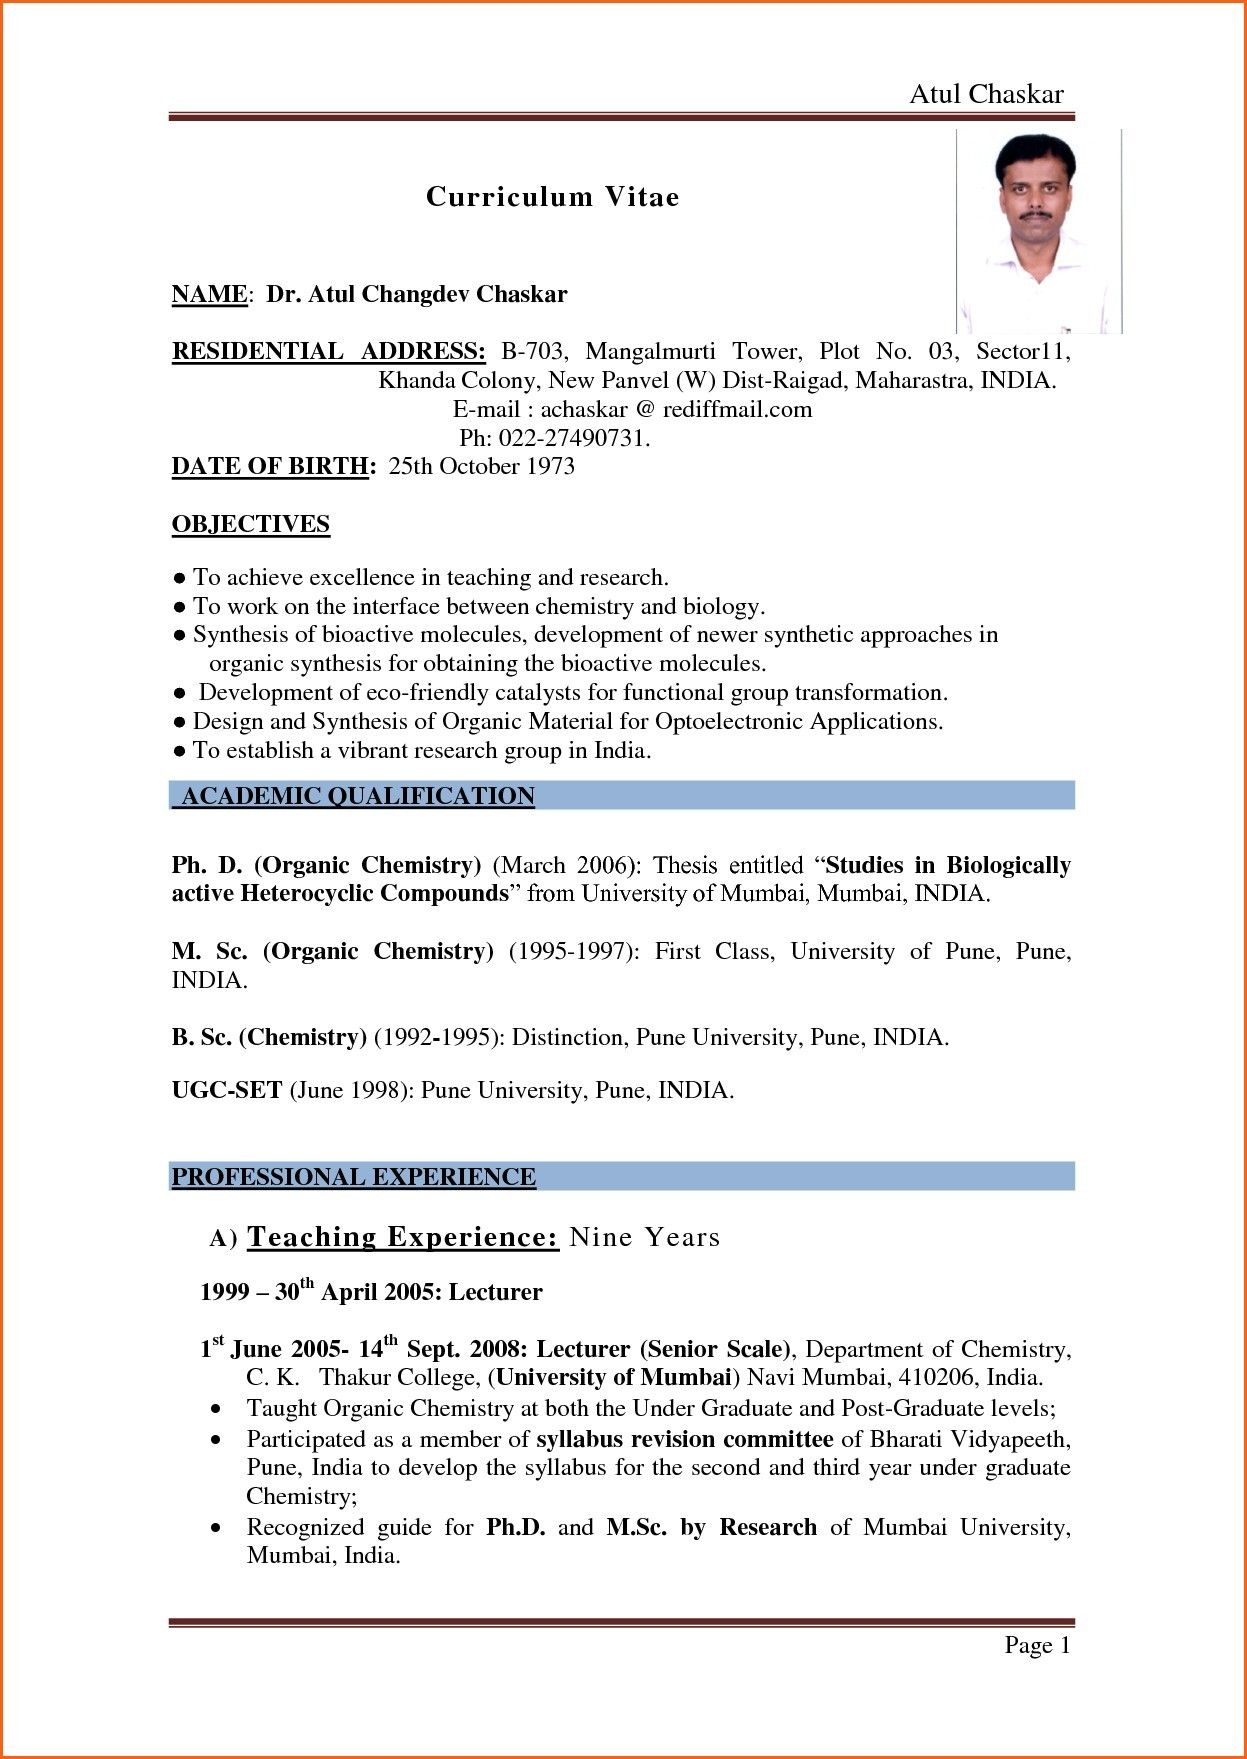 Sample Resume For Teachers In India Pdf At Resume Sample Ideas Rh Cheapjordanretros Us Cv For Phd Appli Job Resume Examples Teacher Resume Good Resume Examples